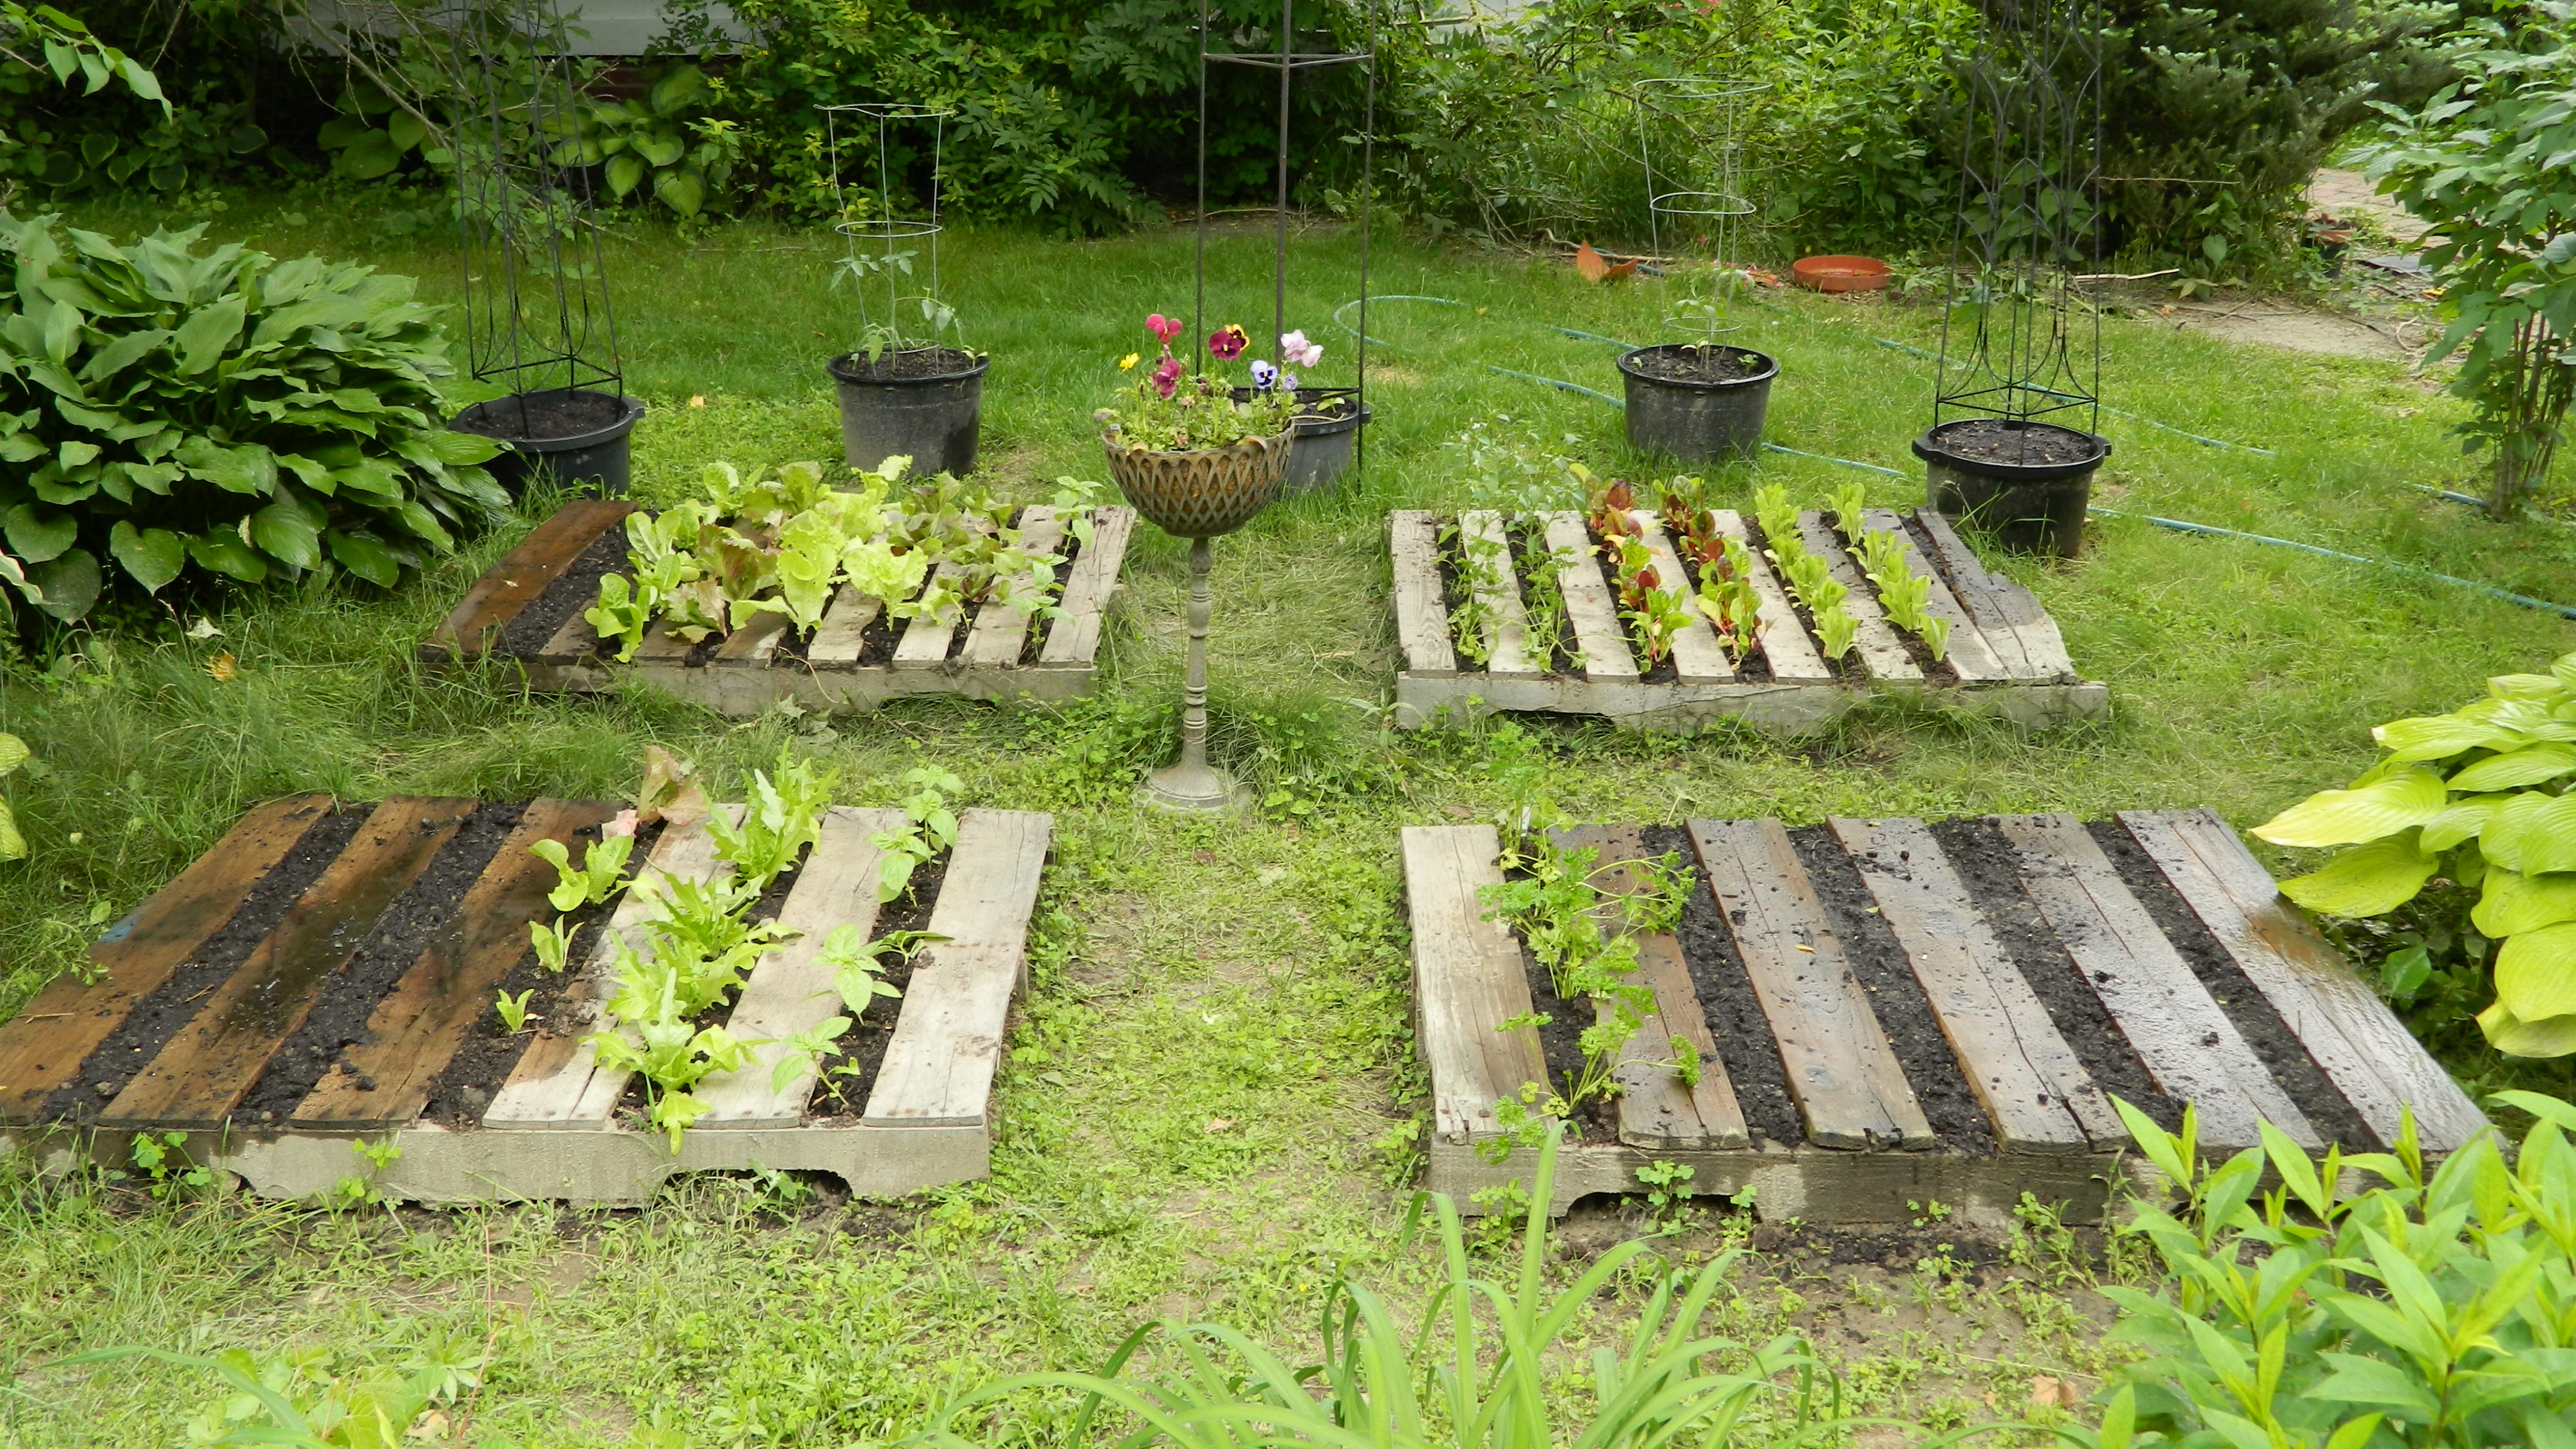 Attirant Back In April I Wrote An Entry That Included A Segment On Plans For  Creating A Pallet Garden. I Am A Strong Believer In Growing Food NOT Lawns.